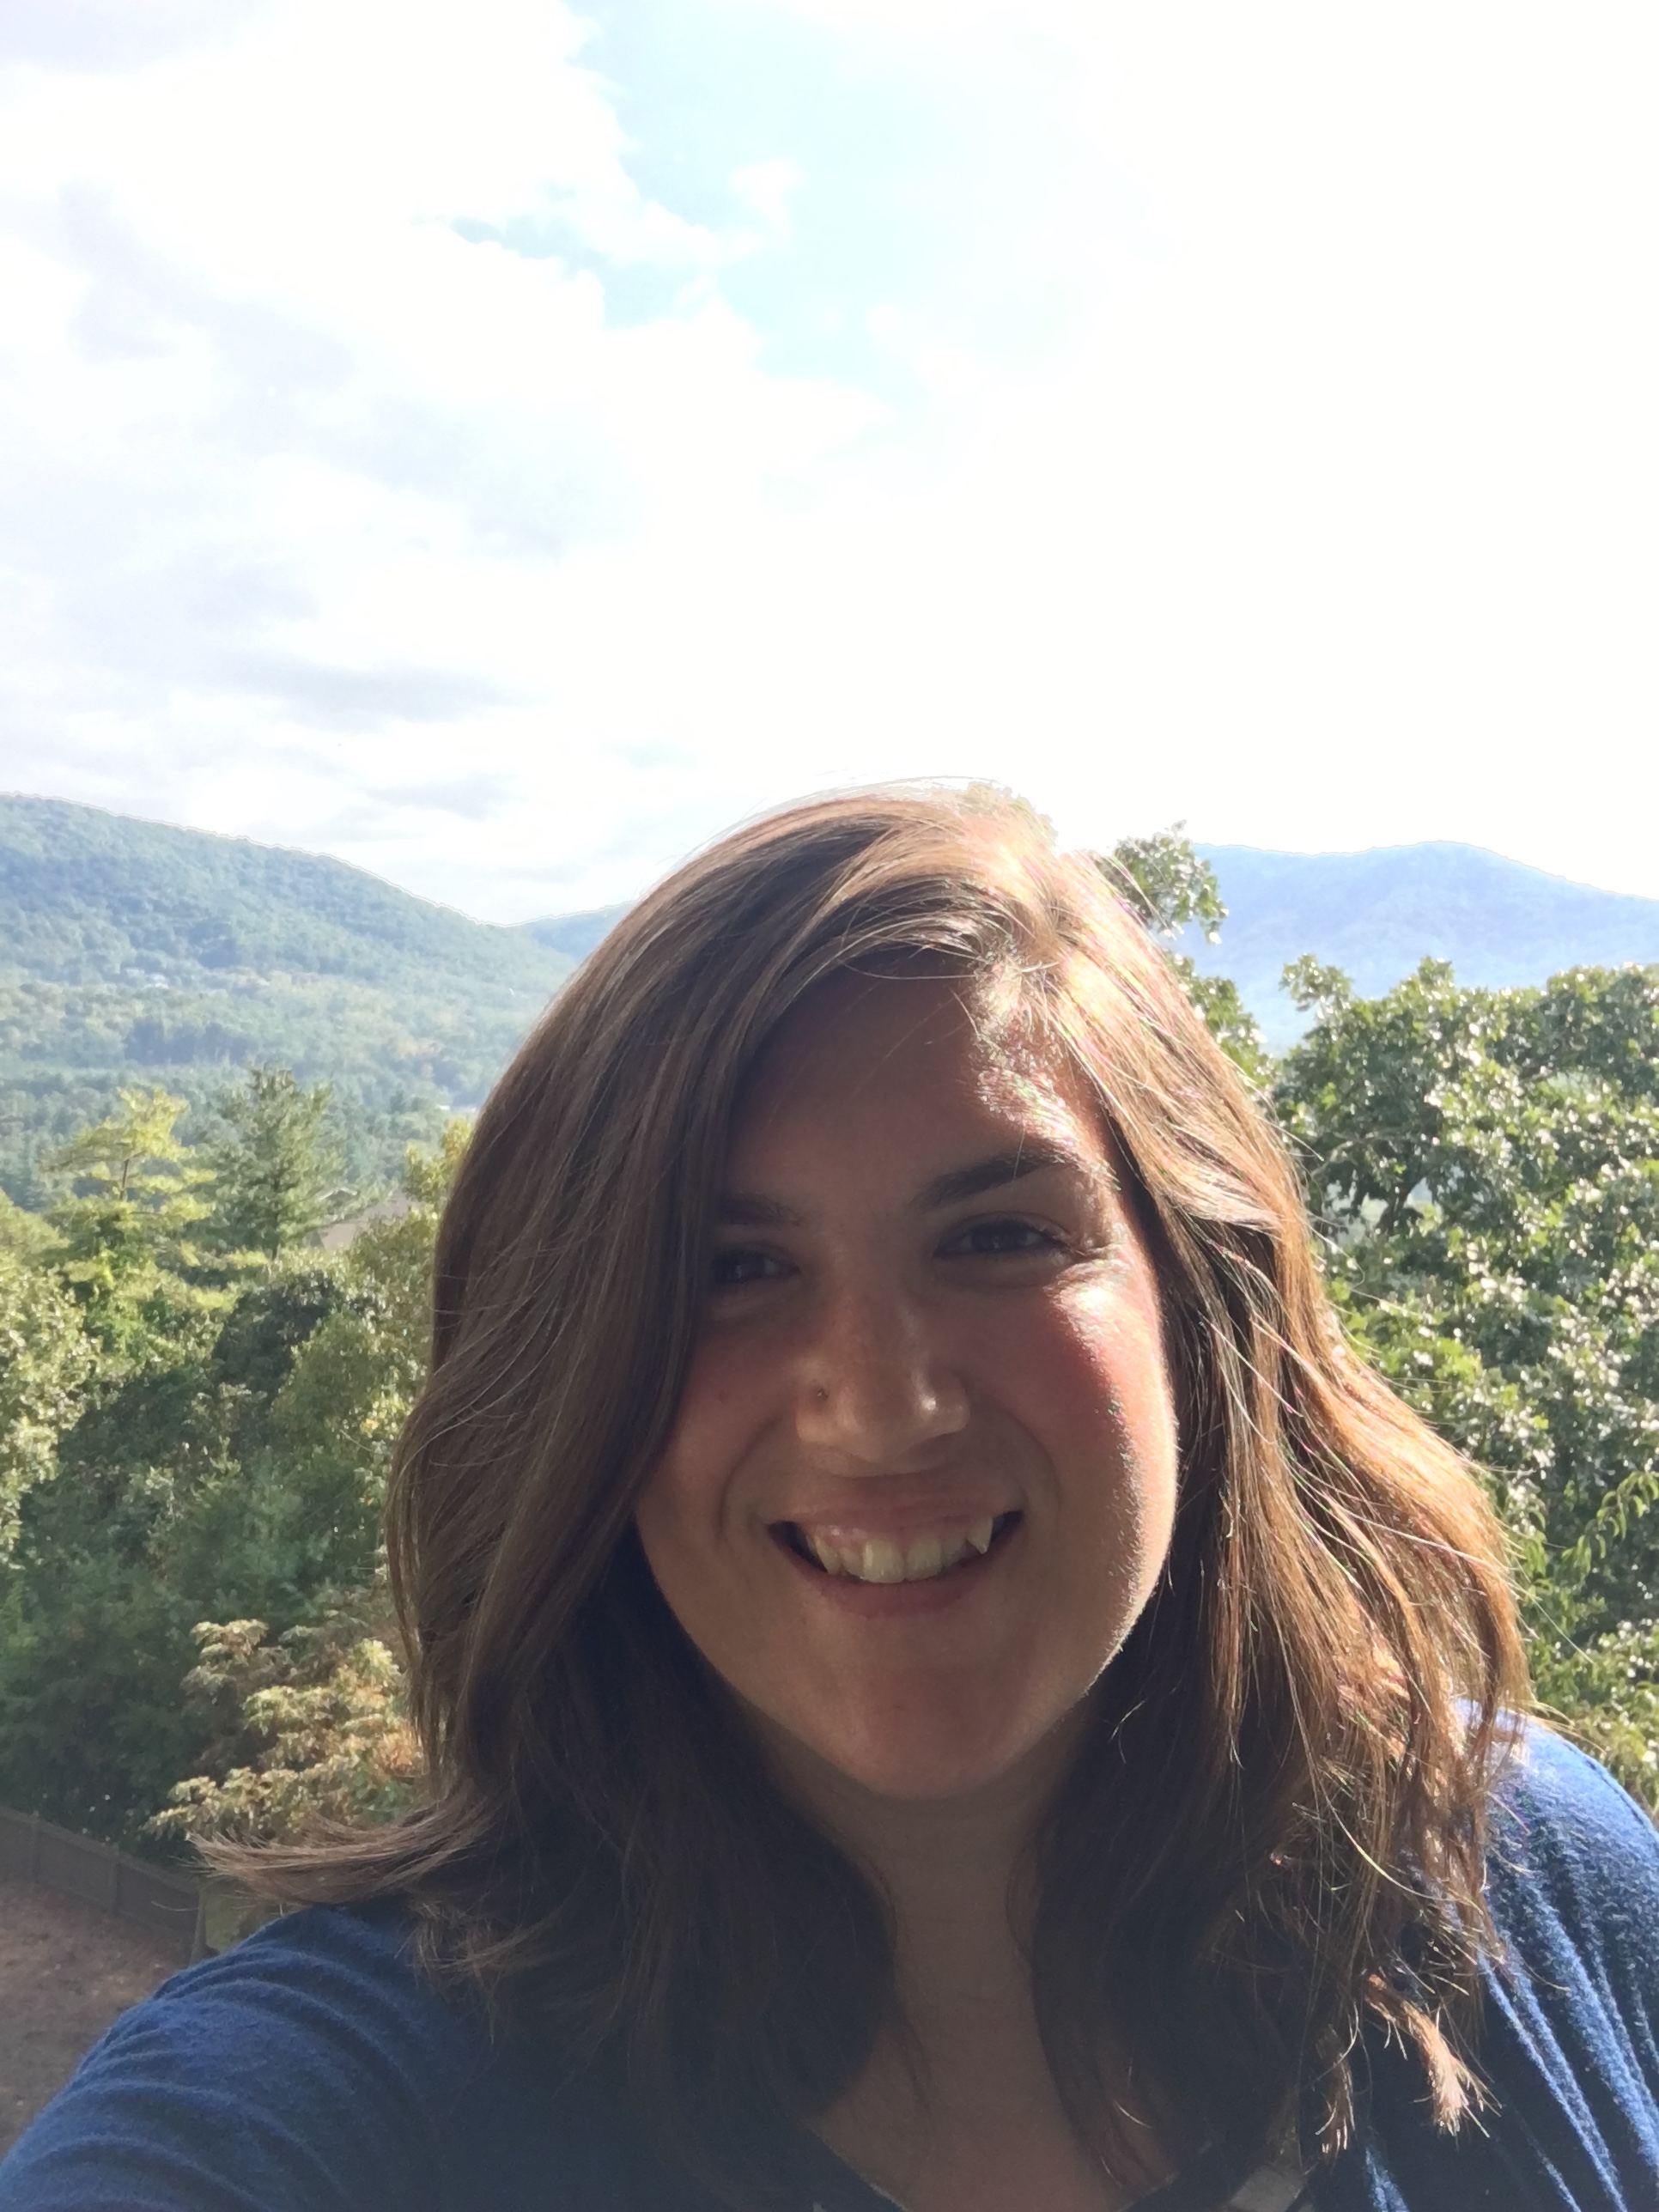 About Me:  I'm Jamie-a licensed mental health counselor and a body positive coach in Asheville, NC. I help women feel sane around food and comfortable in their own skin- at any size. I believe in the power of women supporting women,  Health at Every Size  (R),that all of us were born to take up space and that ALL bodies are good bodies.